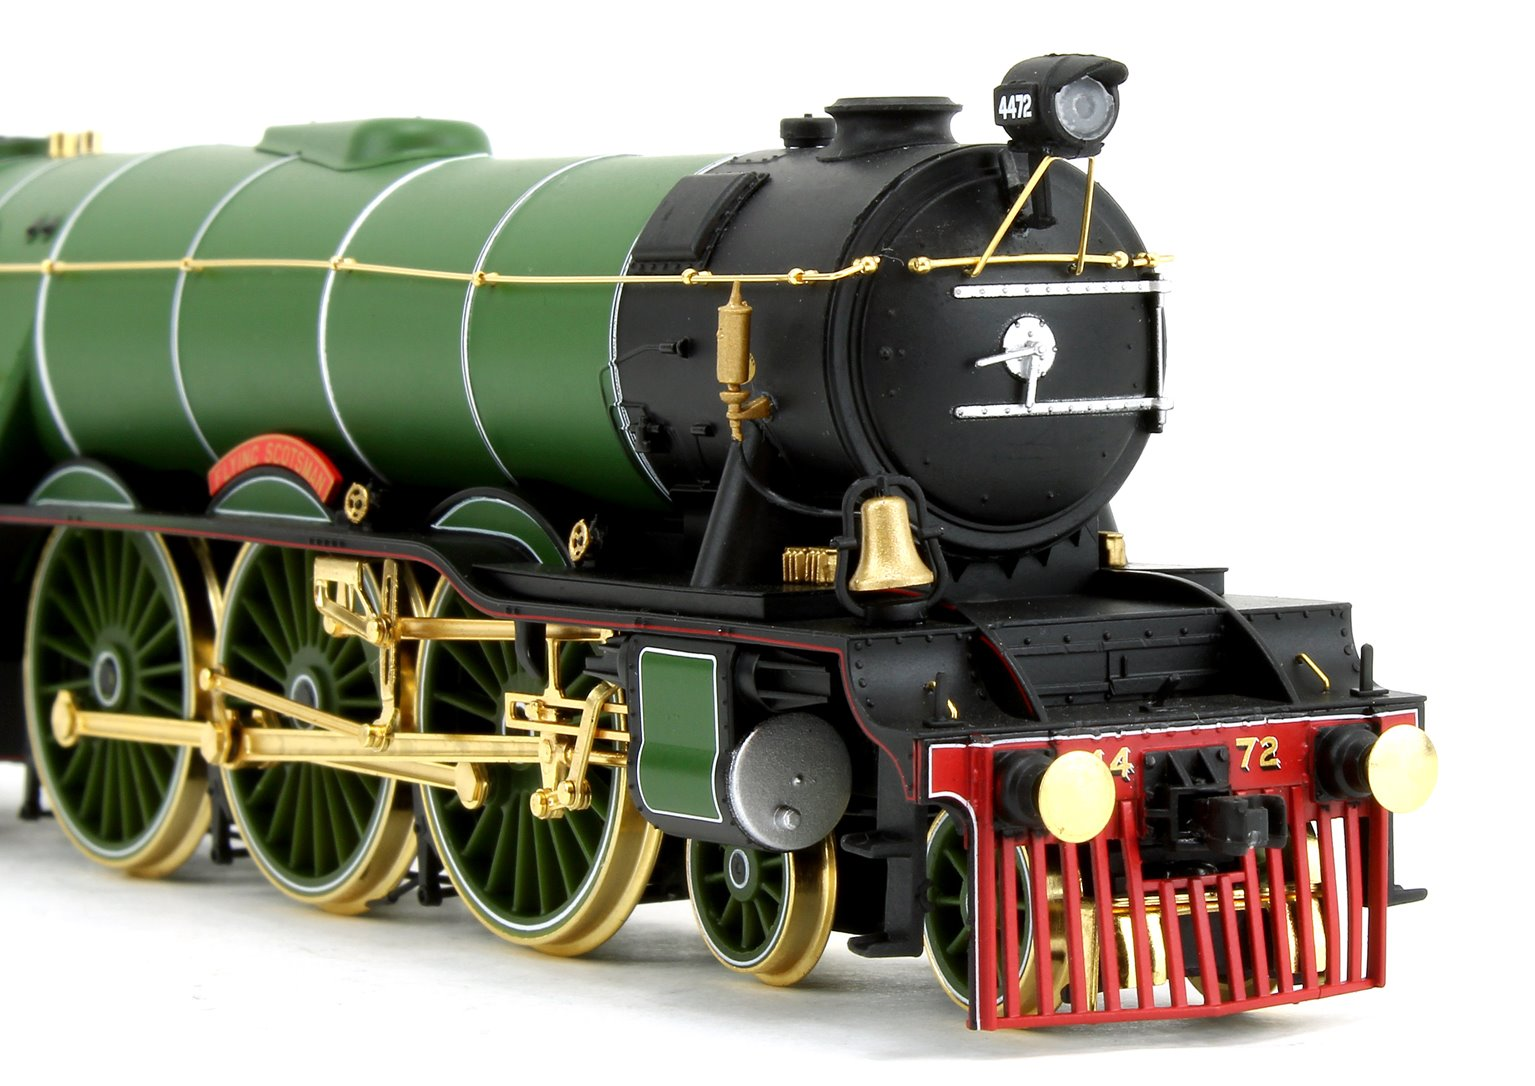 Alan Pegler USA Tour 'Flying Scotsman' LNER Green Class A3 Twin Tendered 4-6-2 Locomotive No.4472 (Gold Plated)